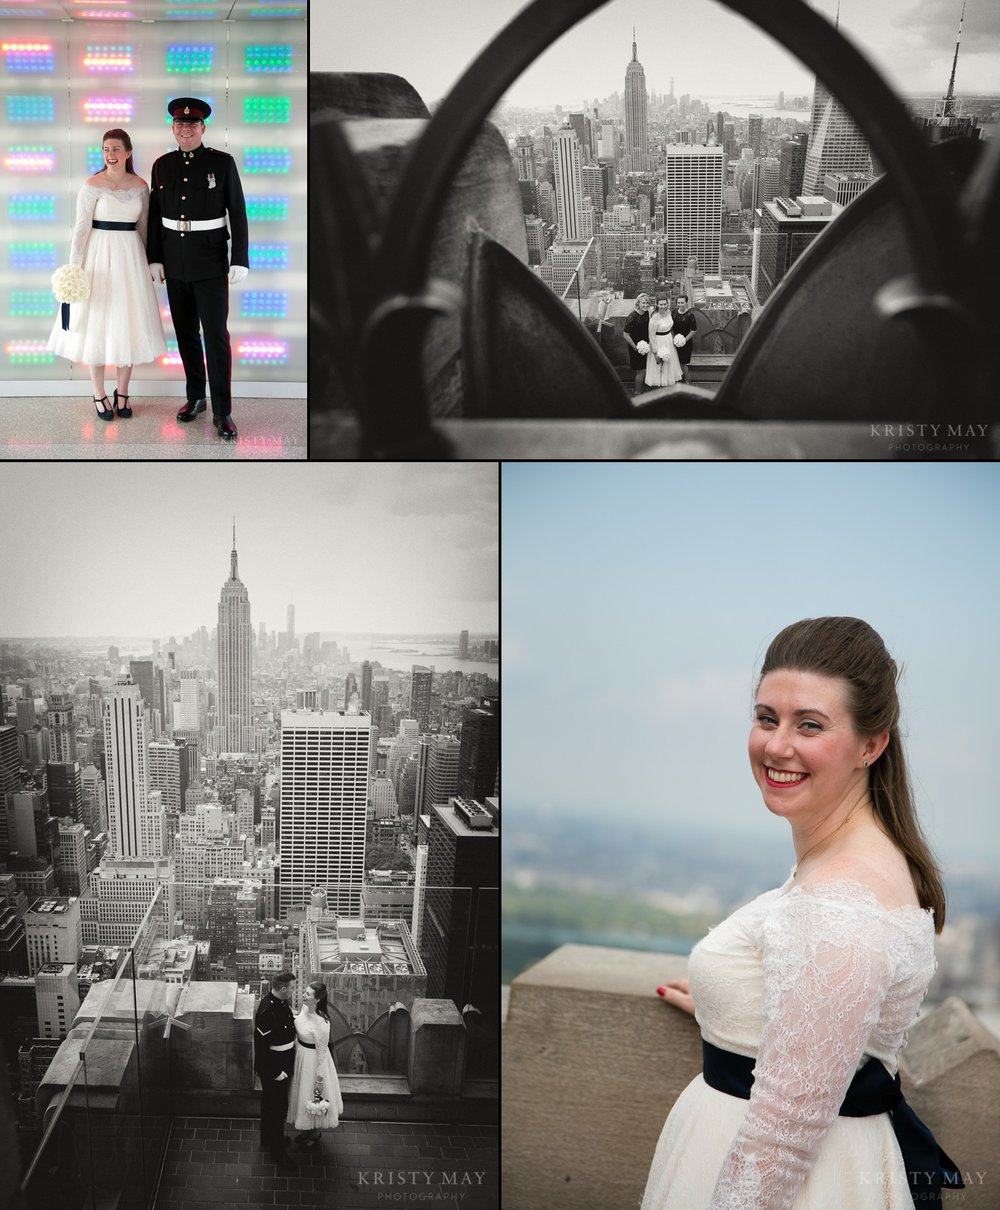 NYC_ELOPEMENT_014.jpg